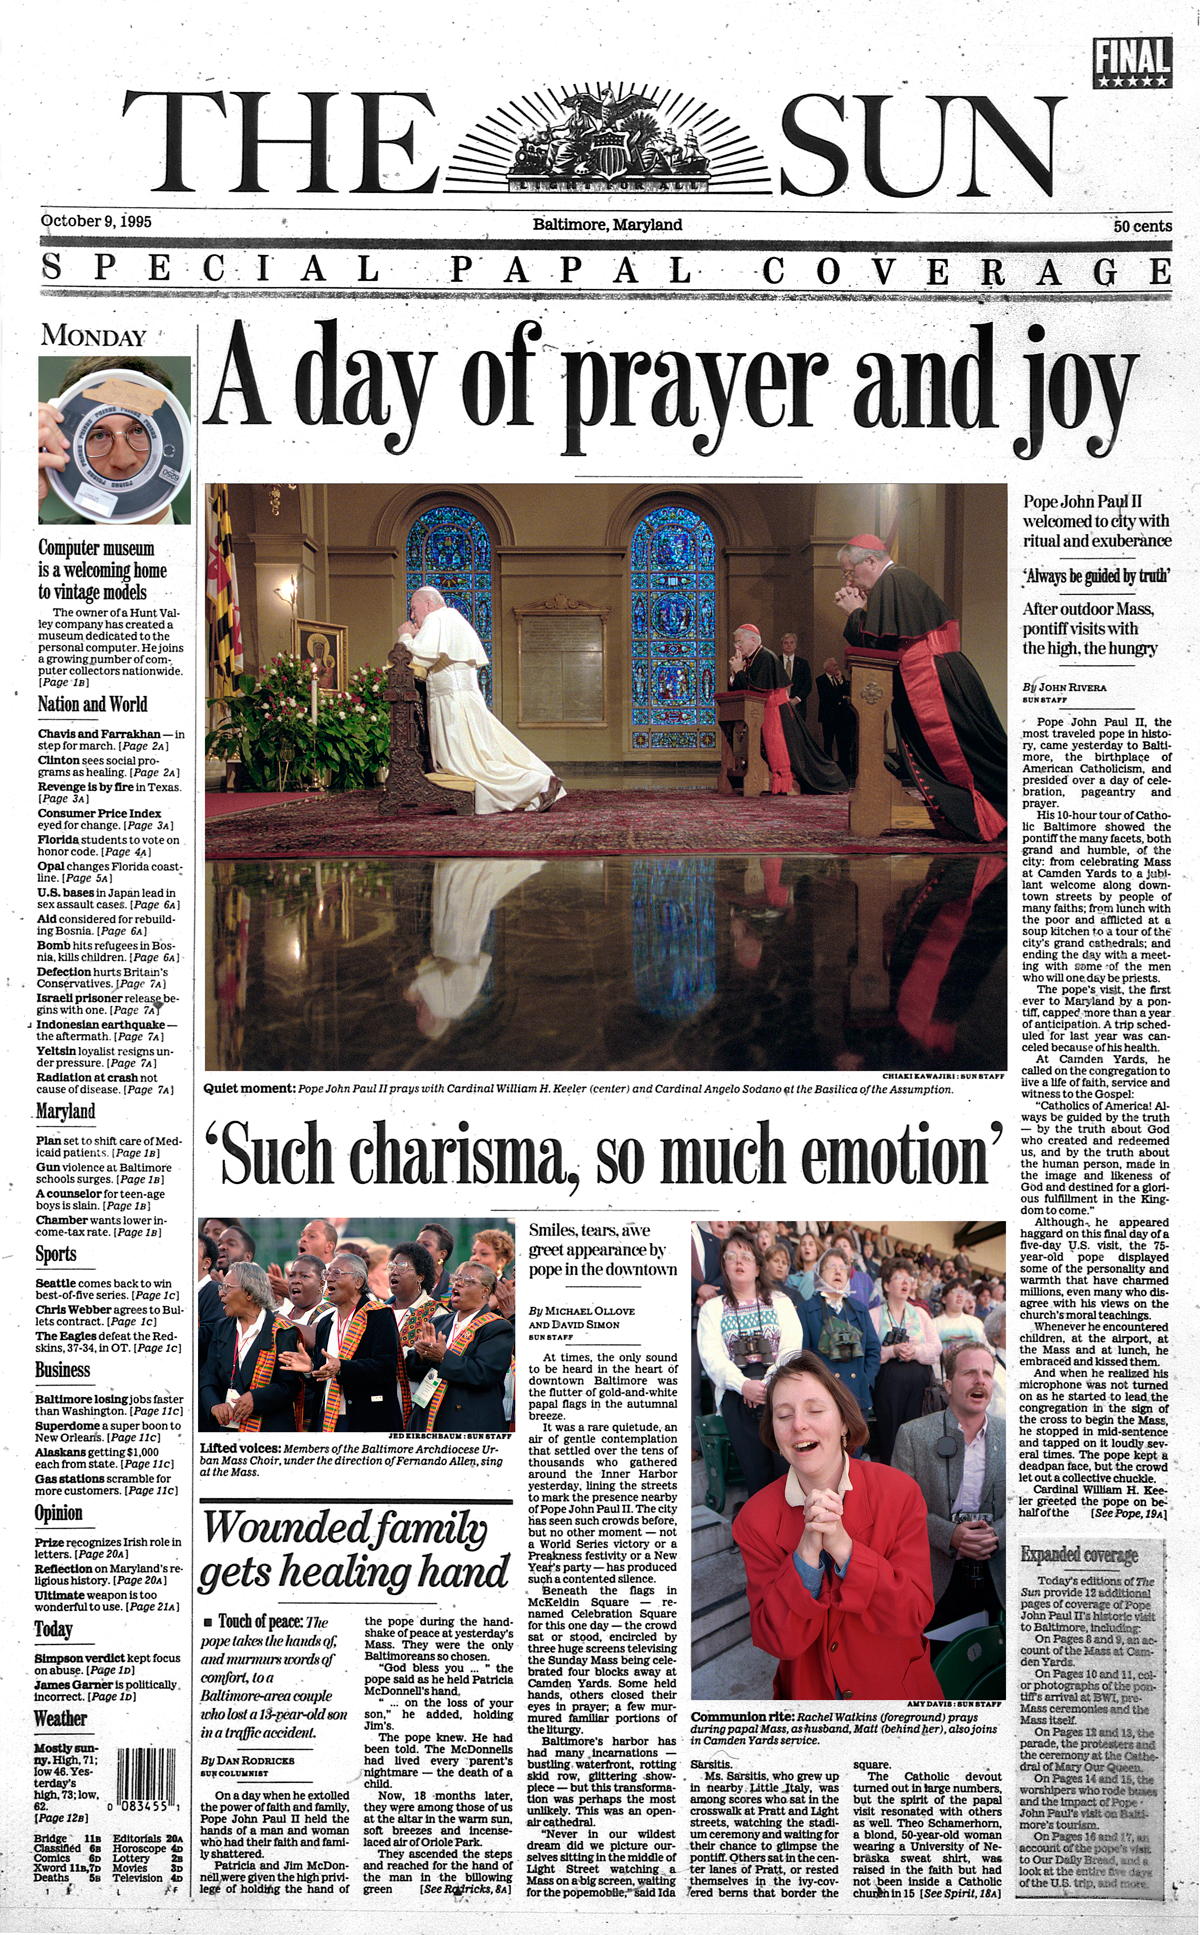 How The Sun covered past papal visits